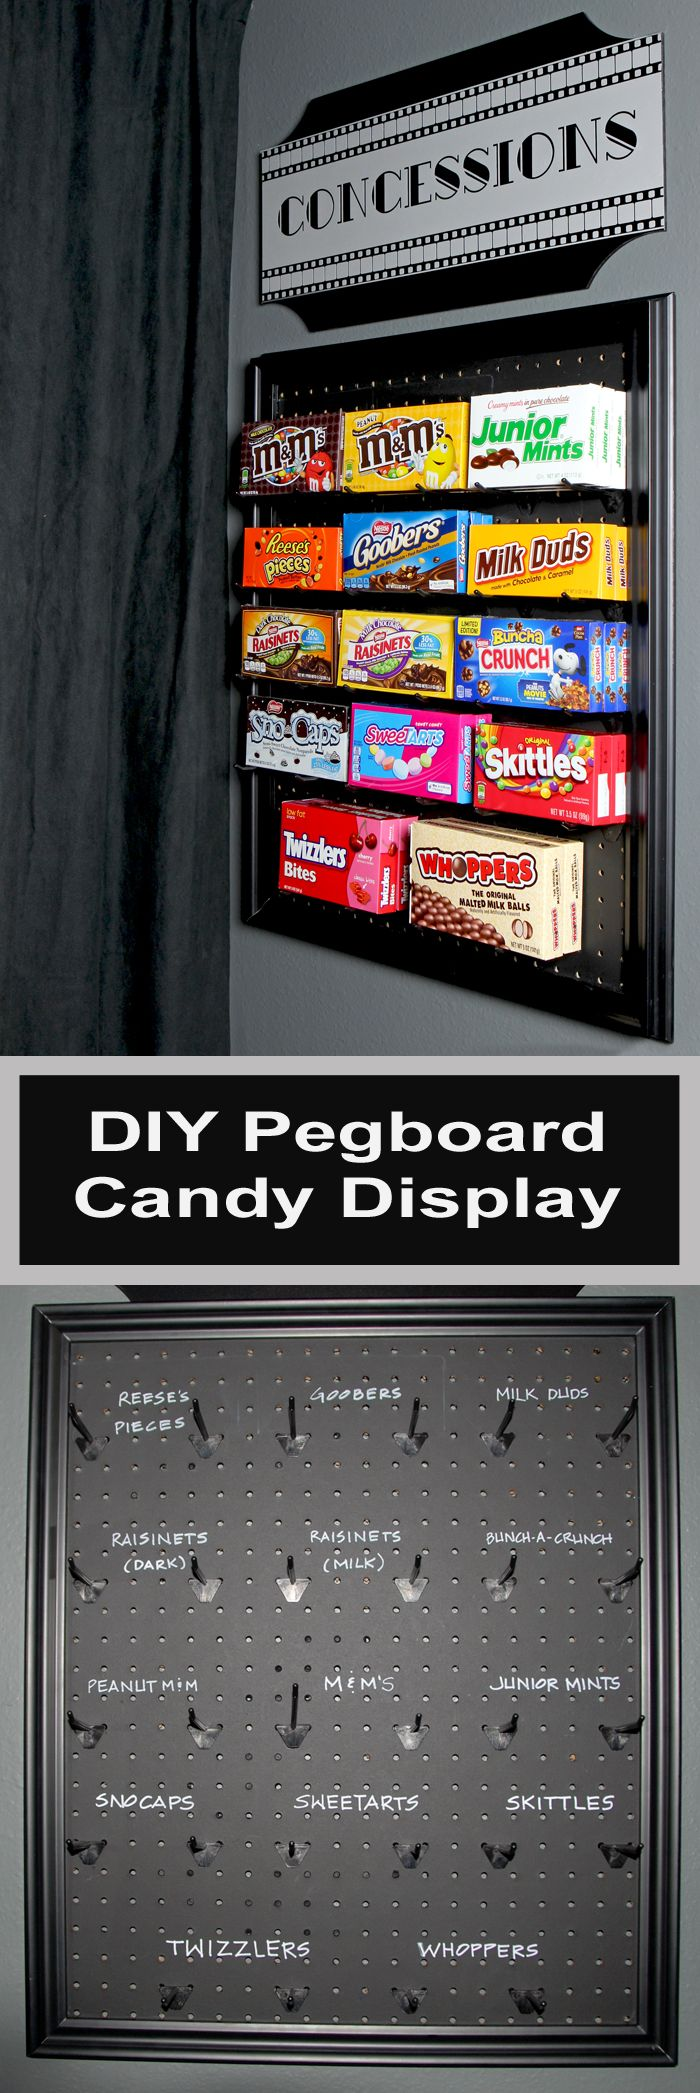 An easy DIY project using pegboard and chalkboard paint to make a fun display for candy in a media room or game room.  It could also be used on an eas…